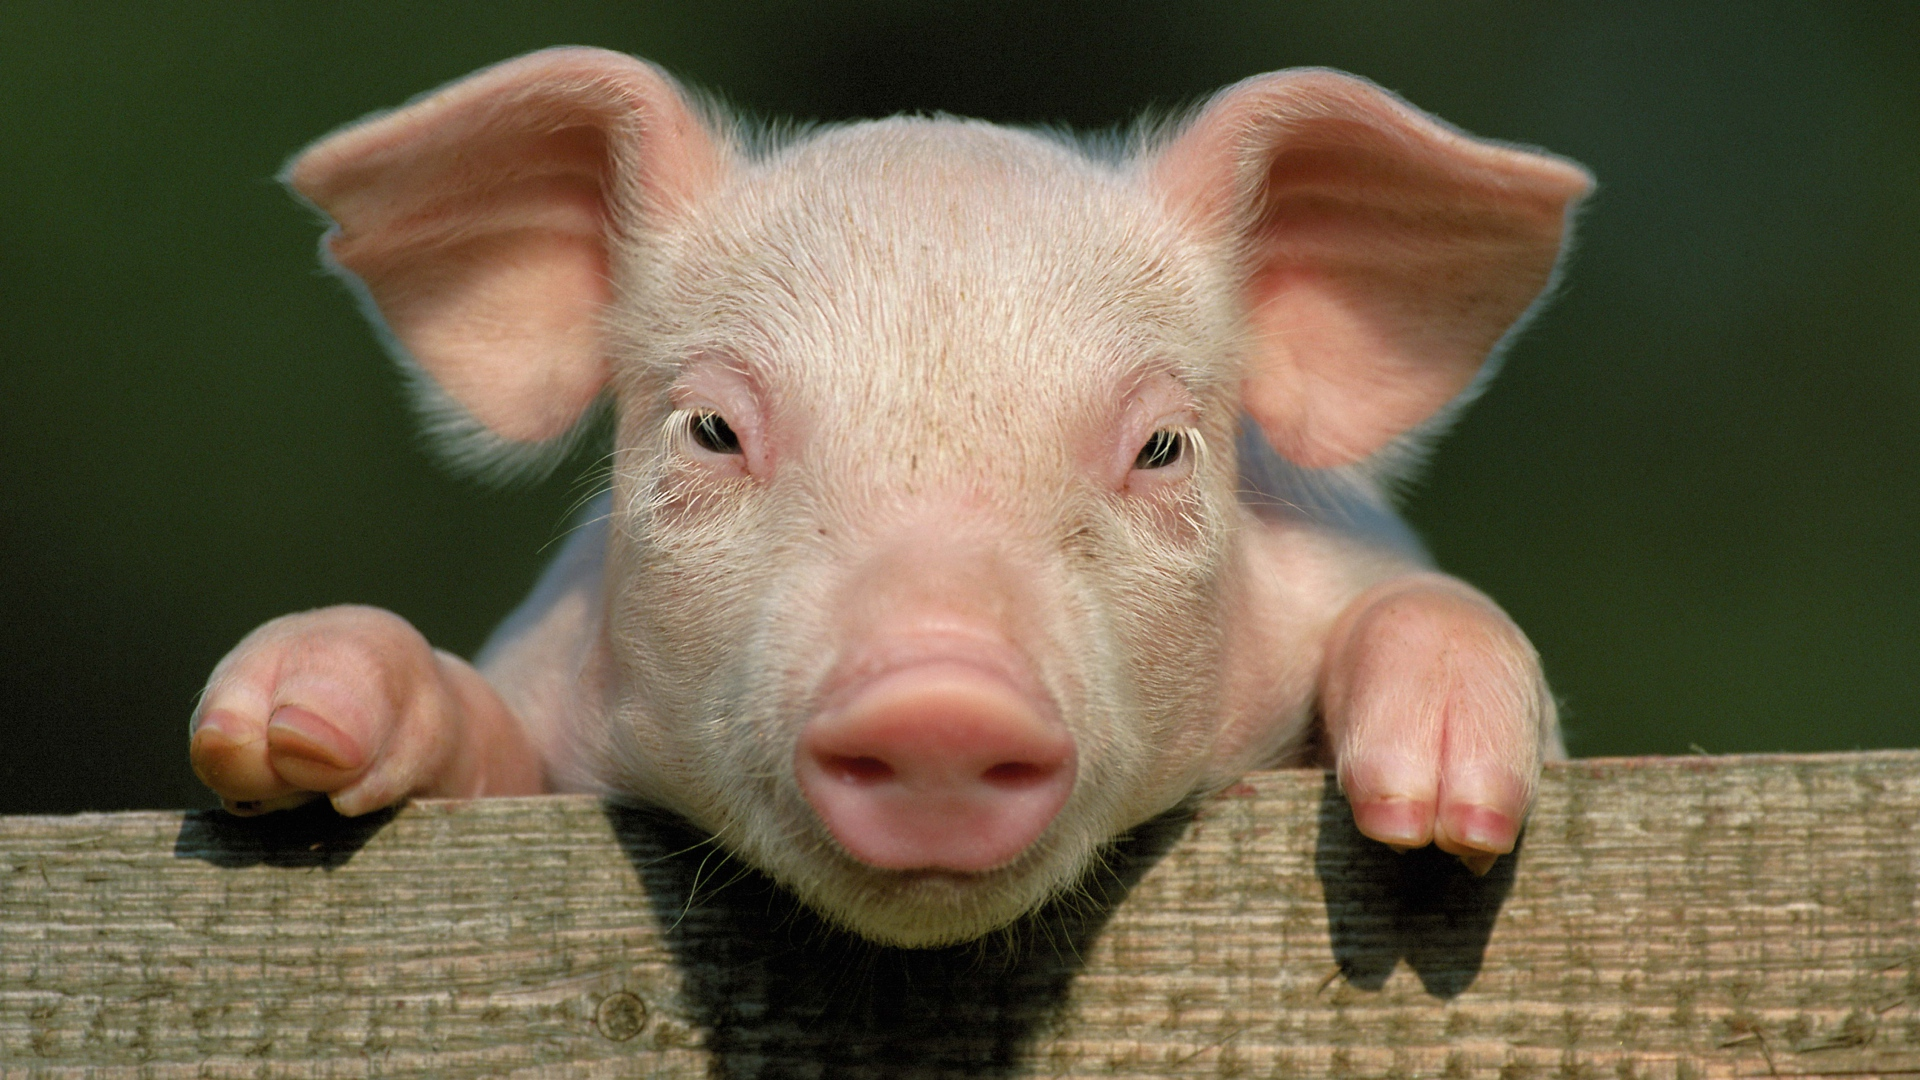 Pig organs could be used as human transplants soon